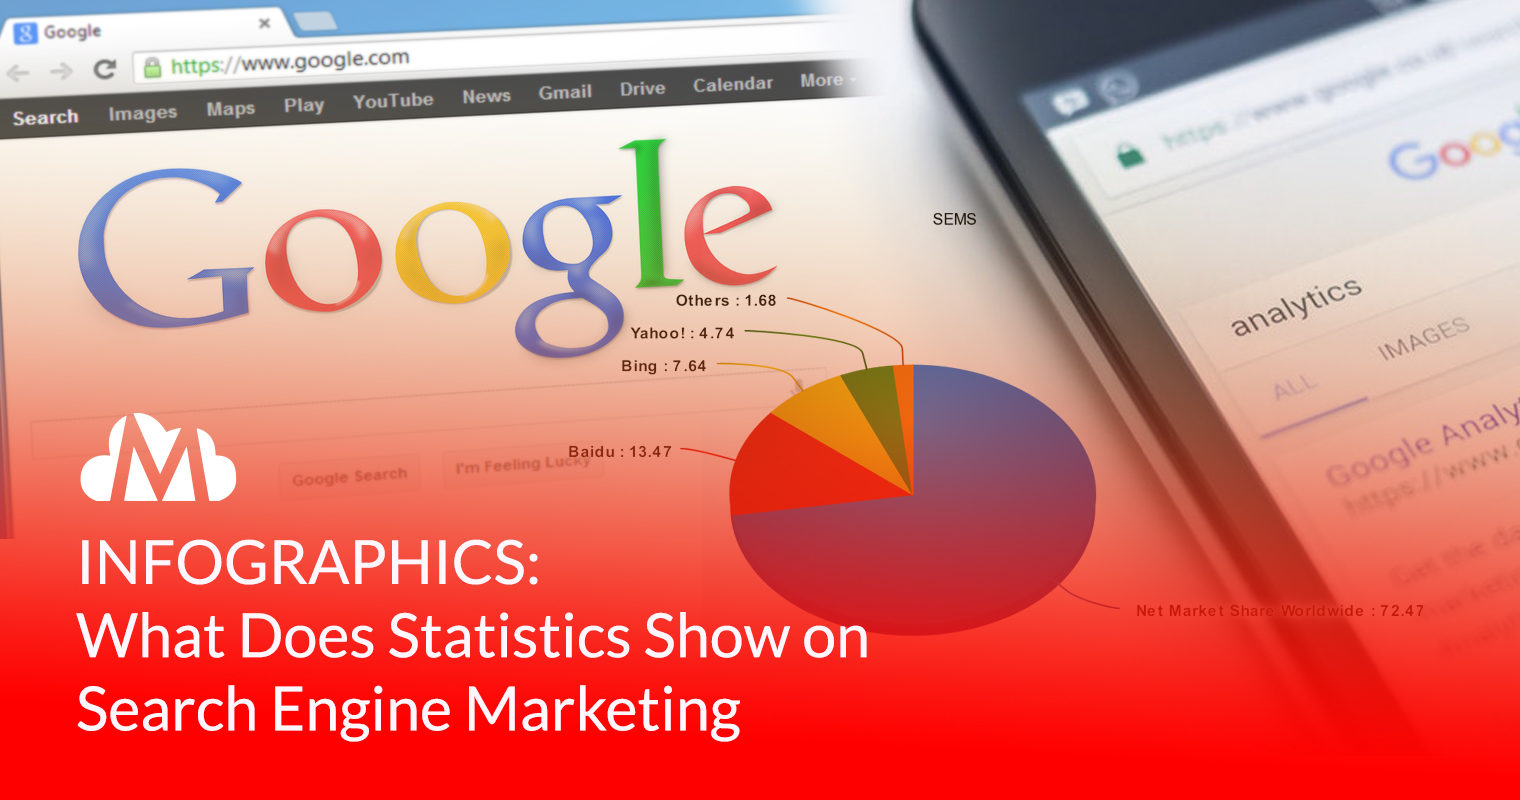 INFOGRAPHICS: What Does Statistics Show On Search Engine Marketing